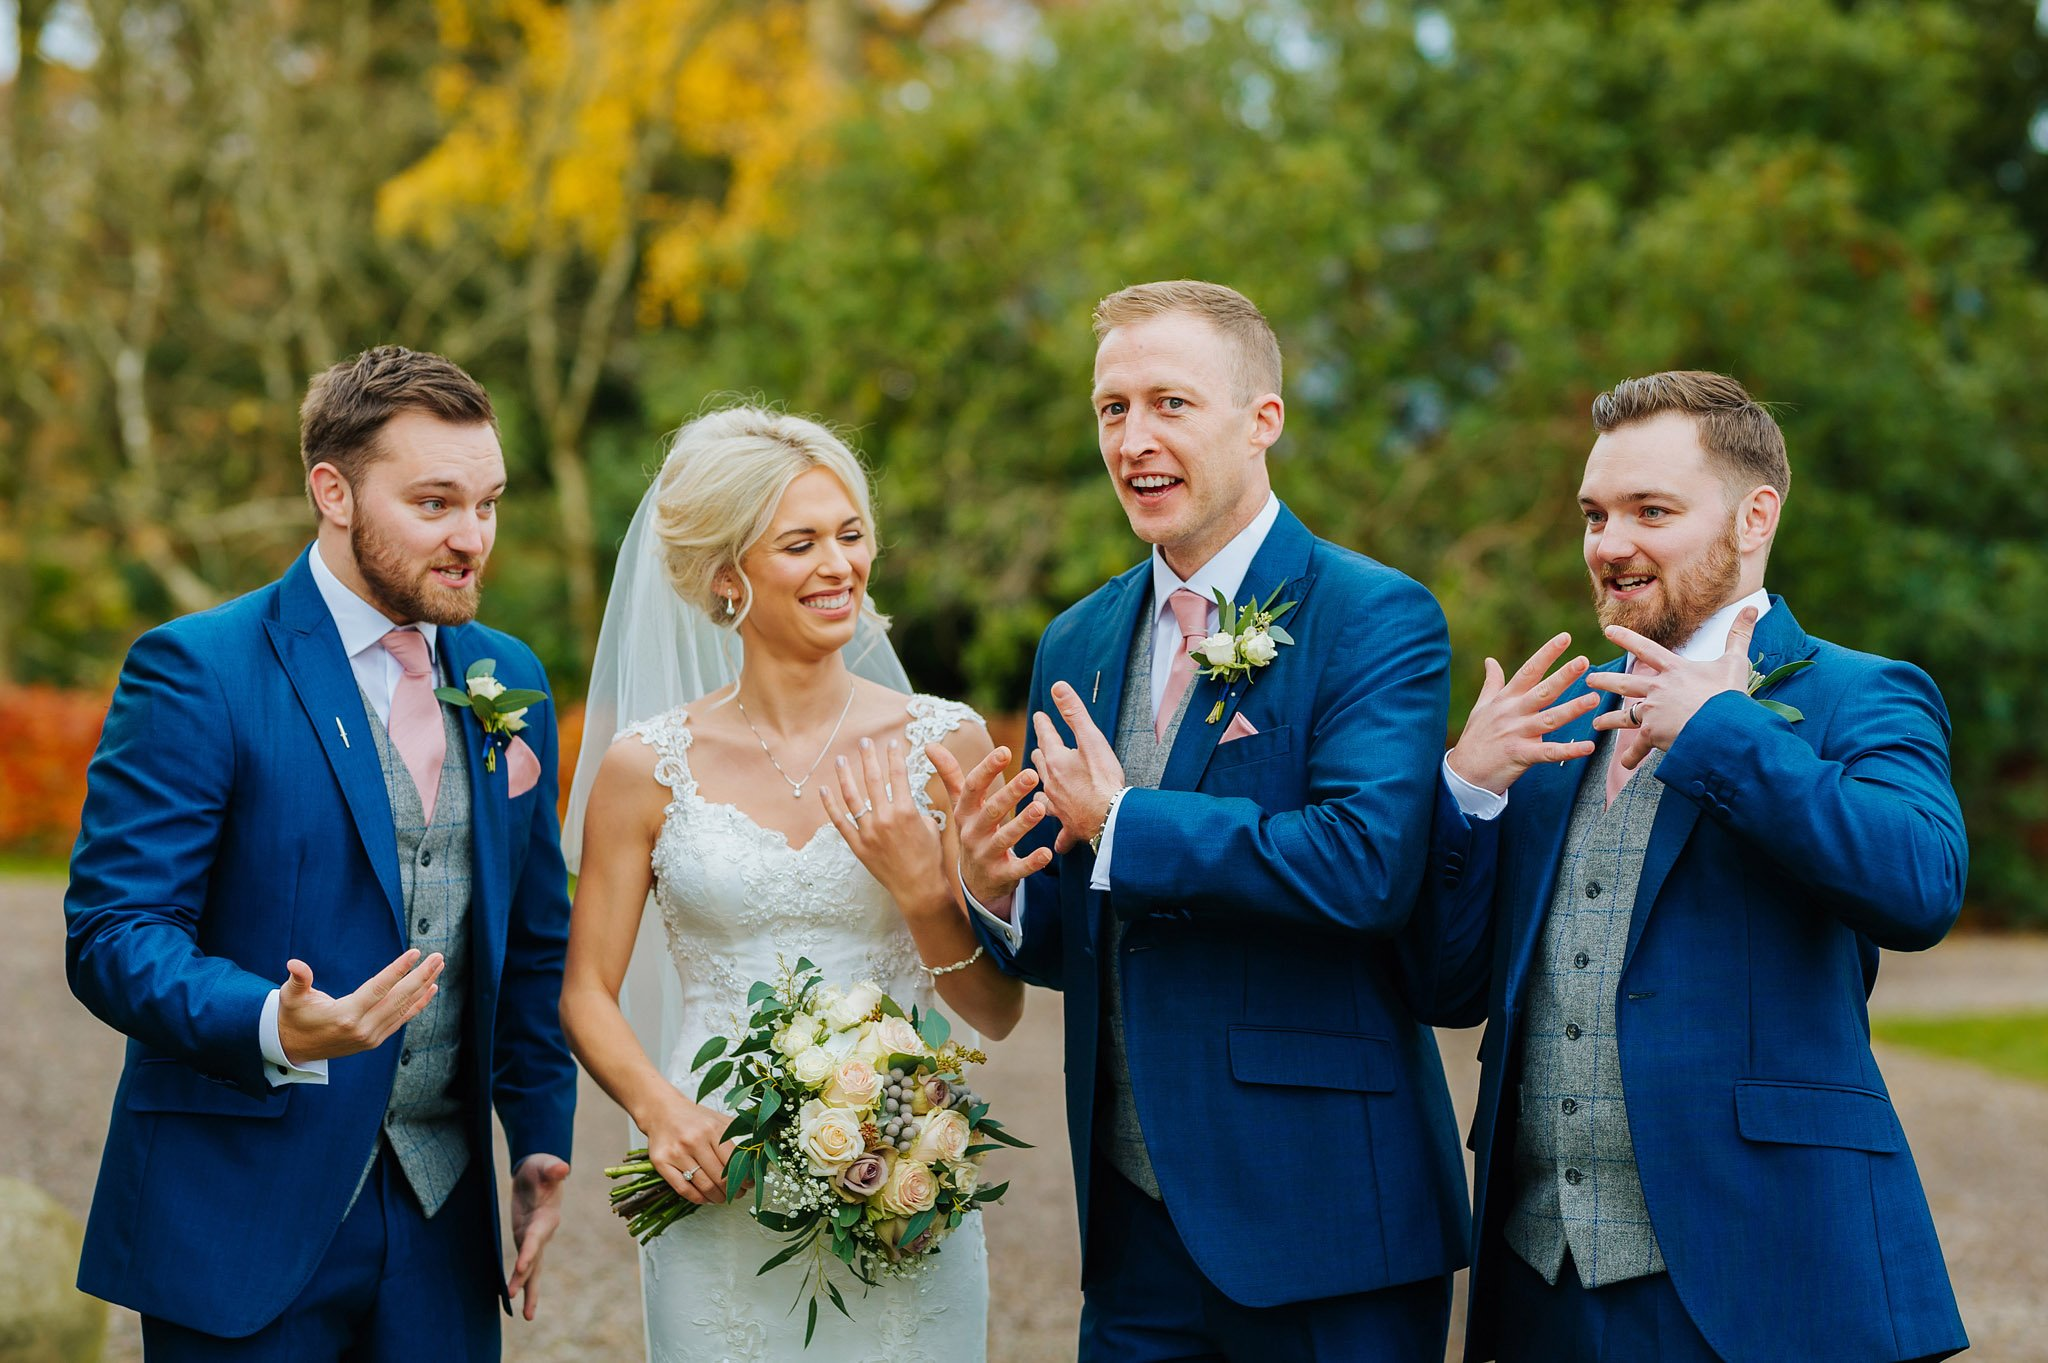 lemore manor wedding herefordshire 68 - Lemore Manor wedding, Herefordshire - West Midlands | Sadie + Ken